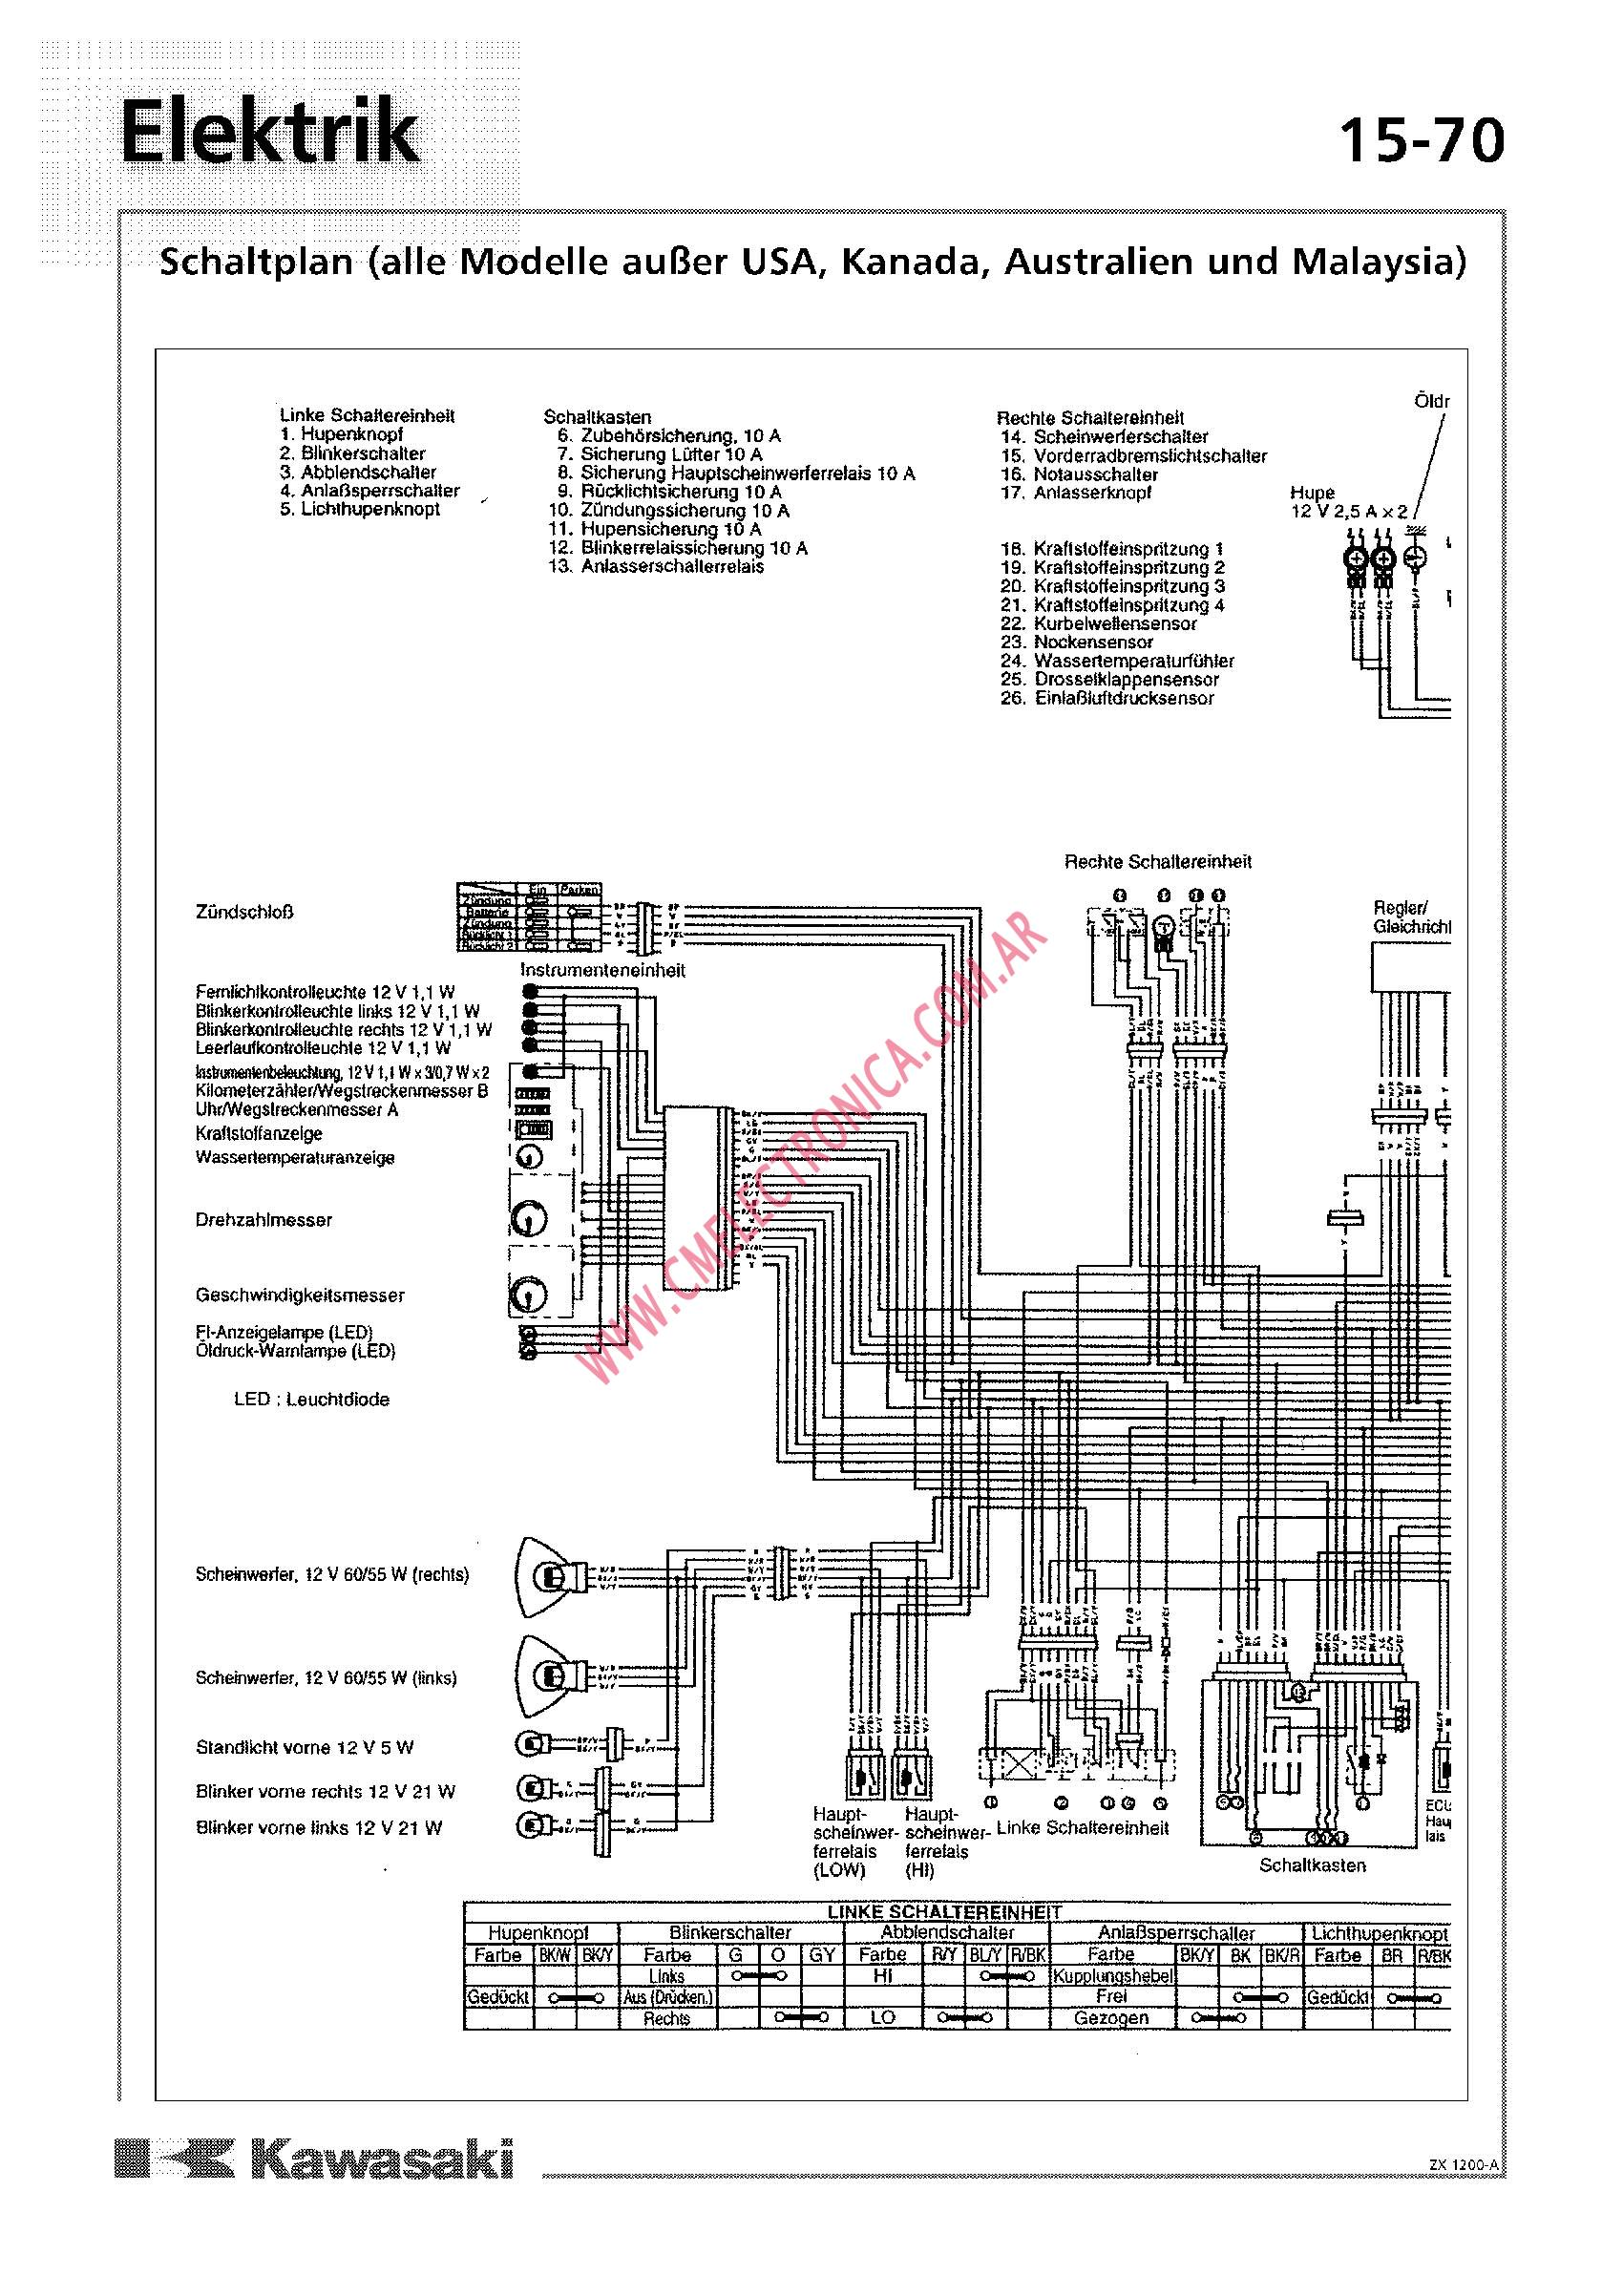 Kawasaki Zx12r Wiring Diagram Page 3 And Schematics 79 Ford Alternator Free Picture 2002 Gsxr 1000